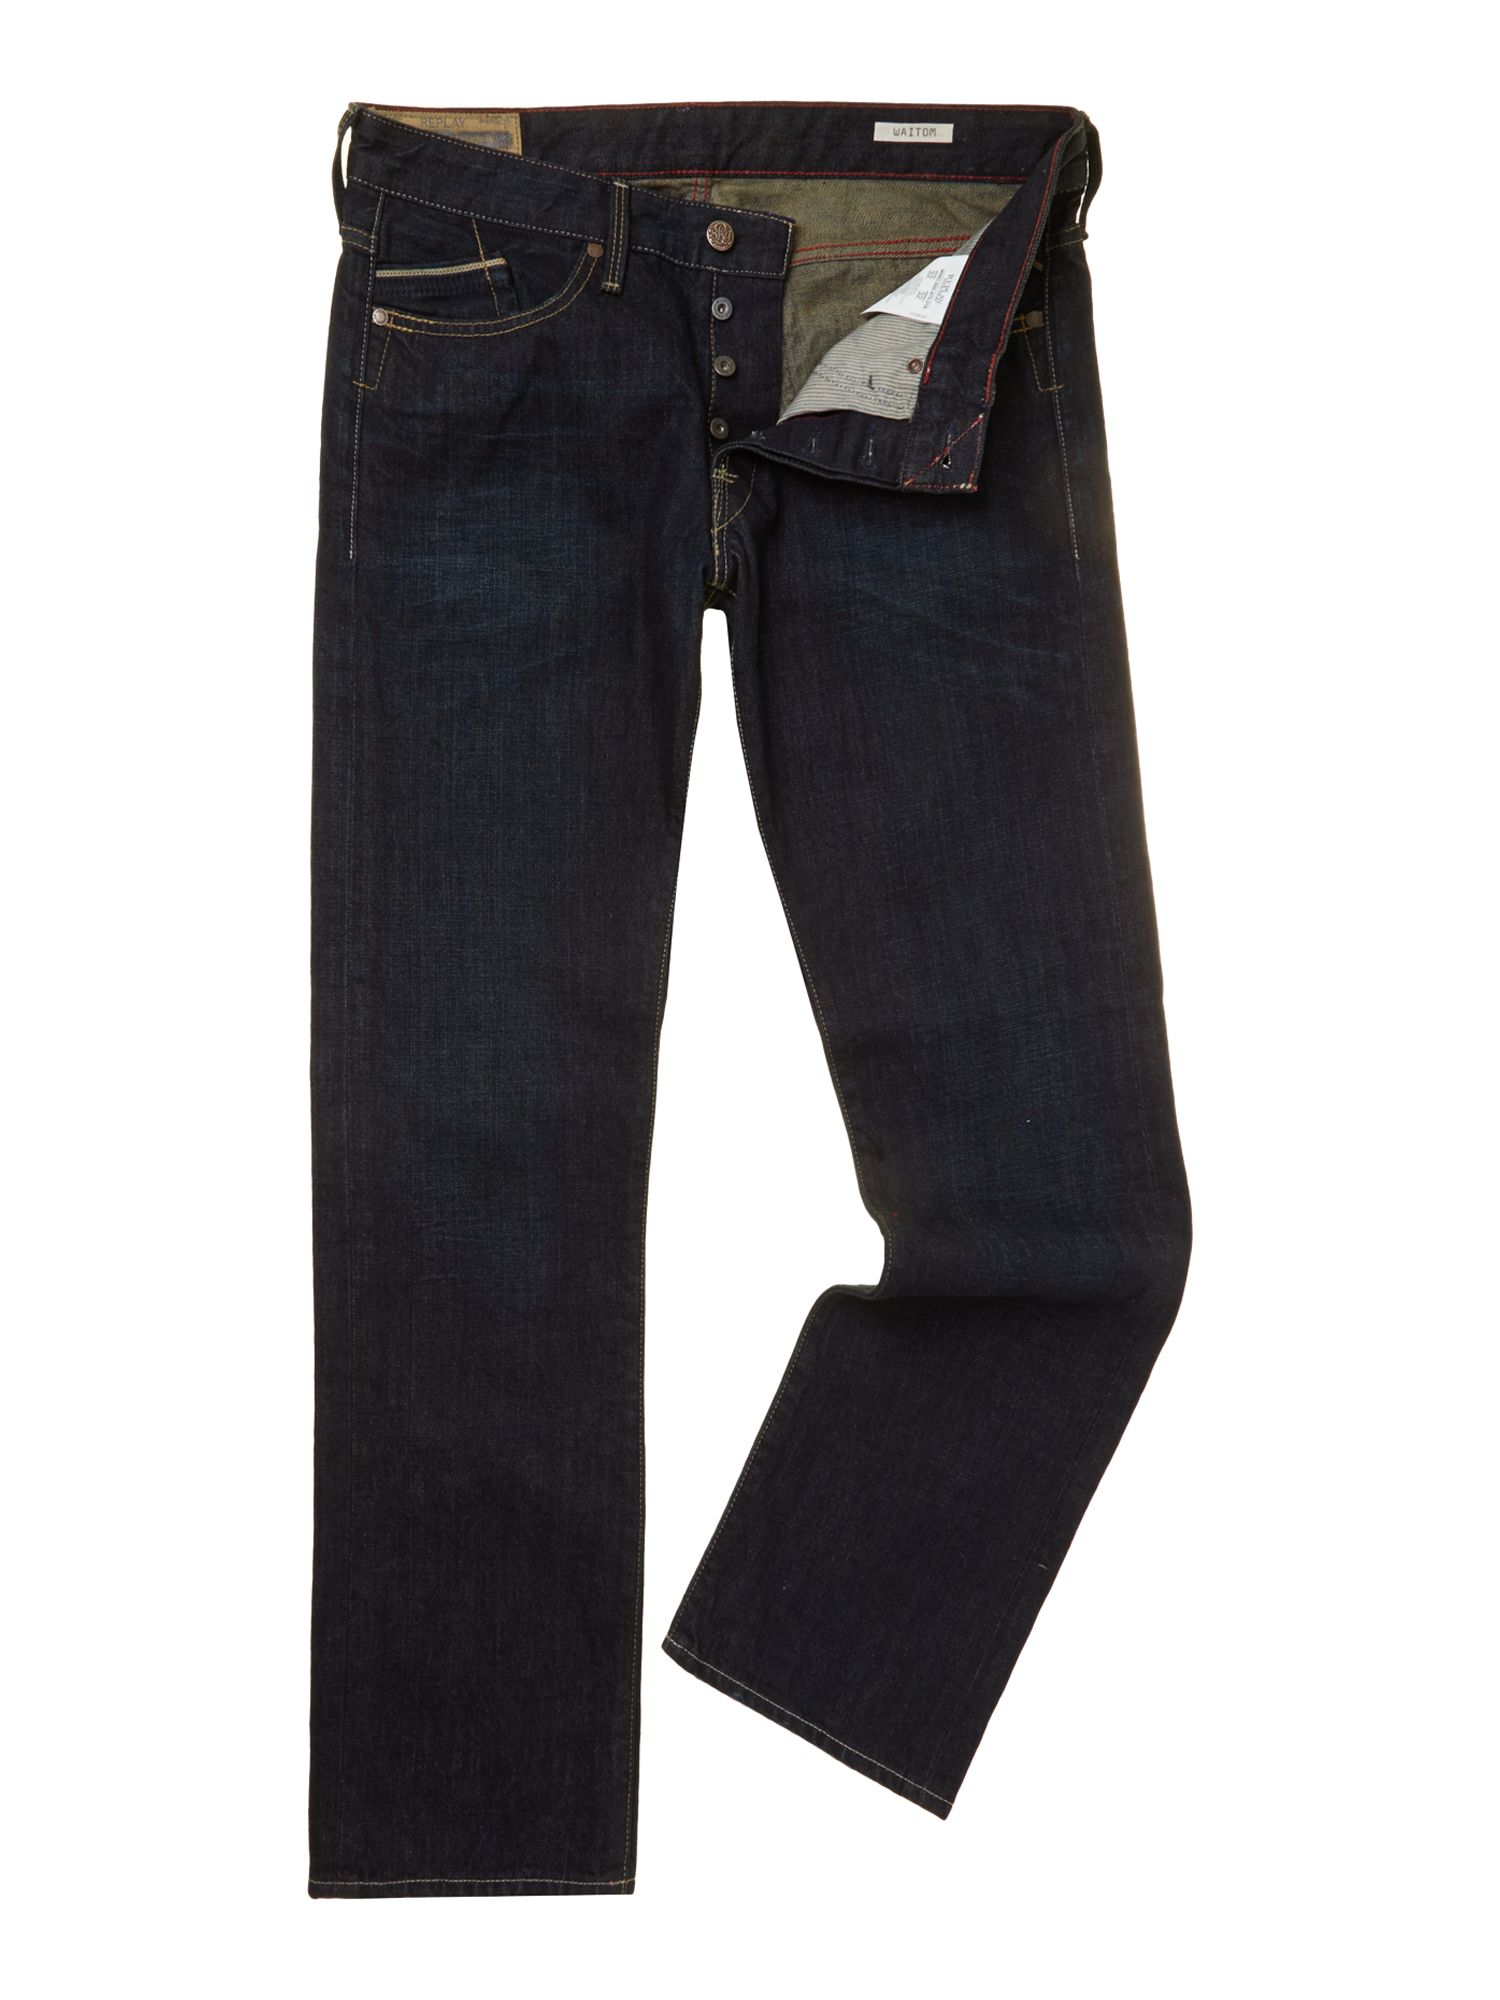 Waitom slim fit denim jeans